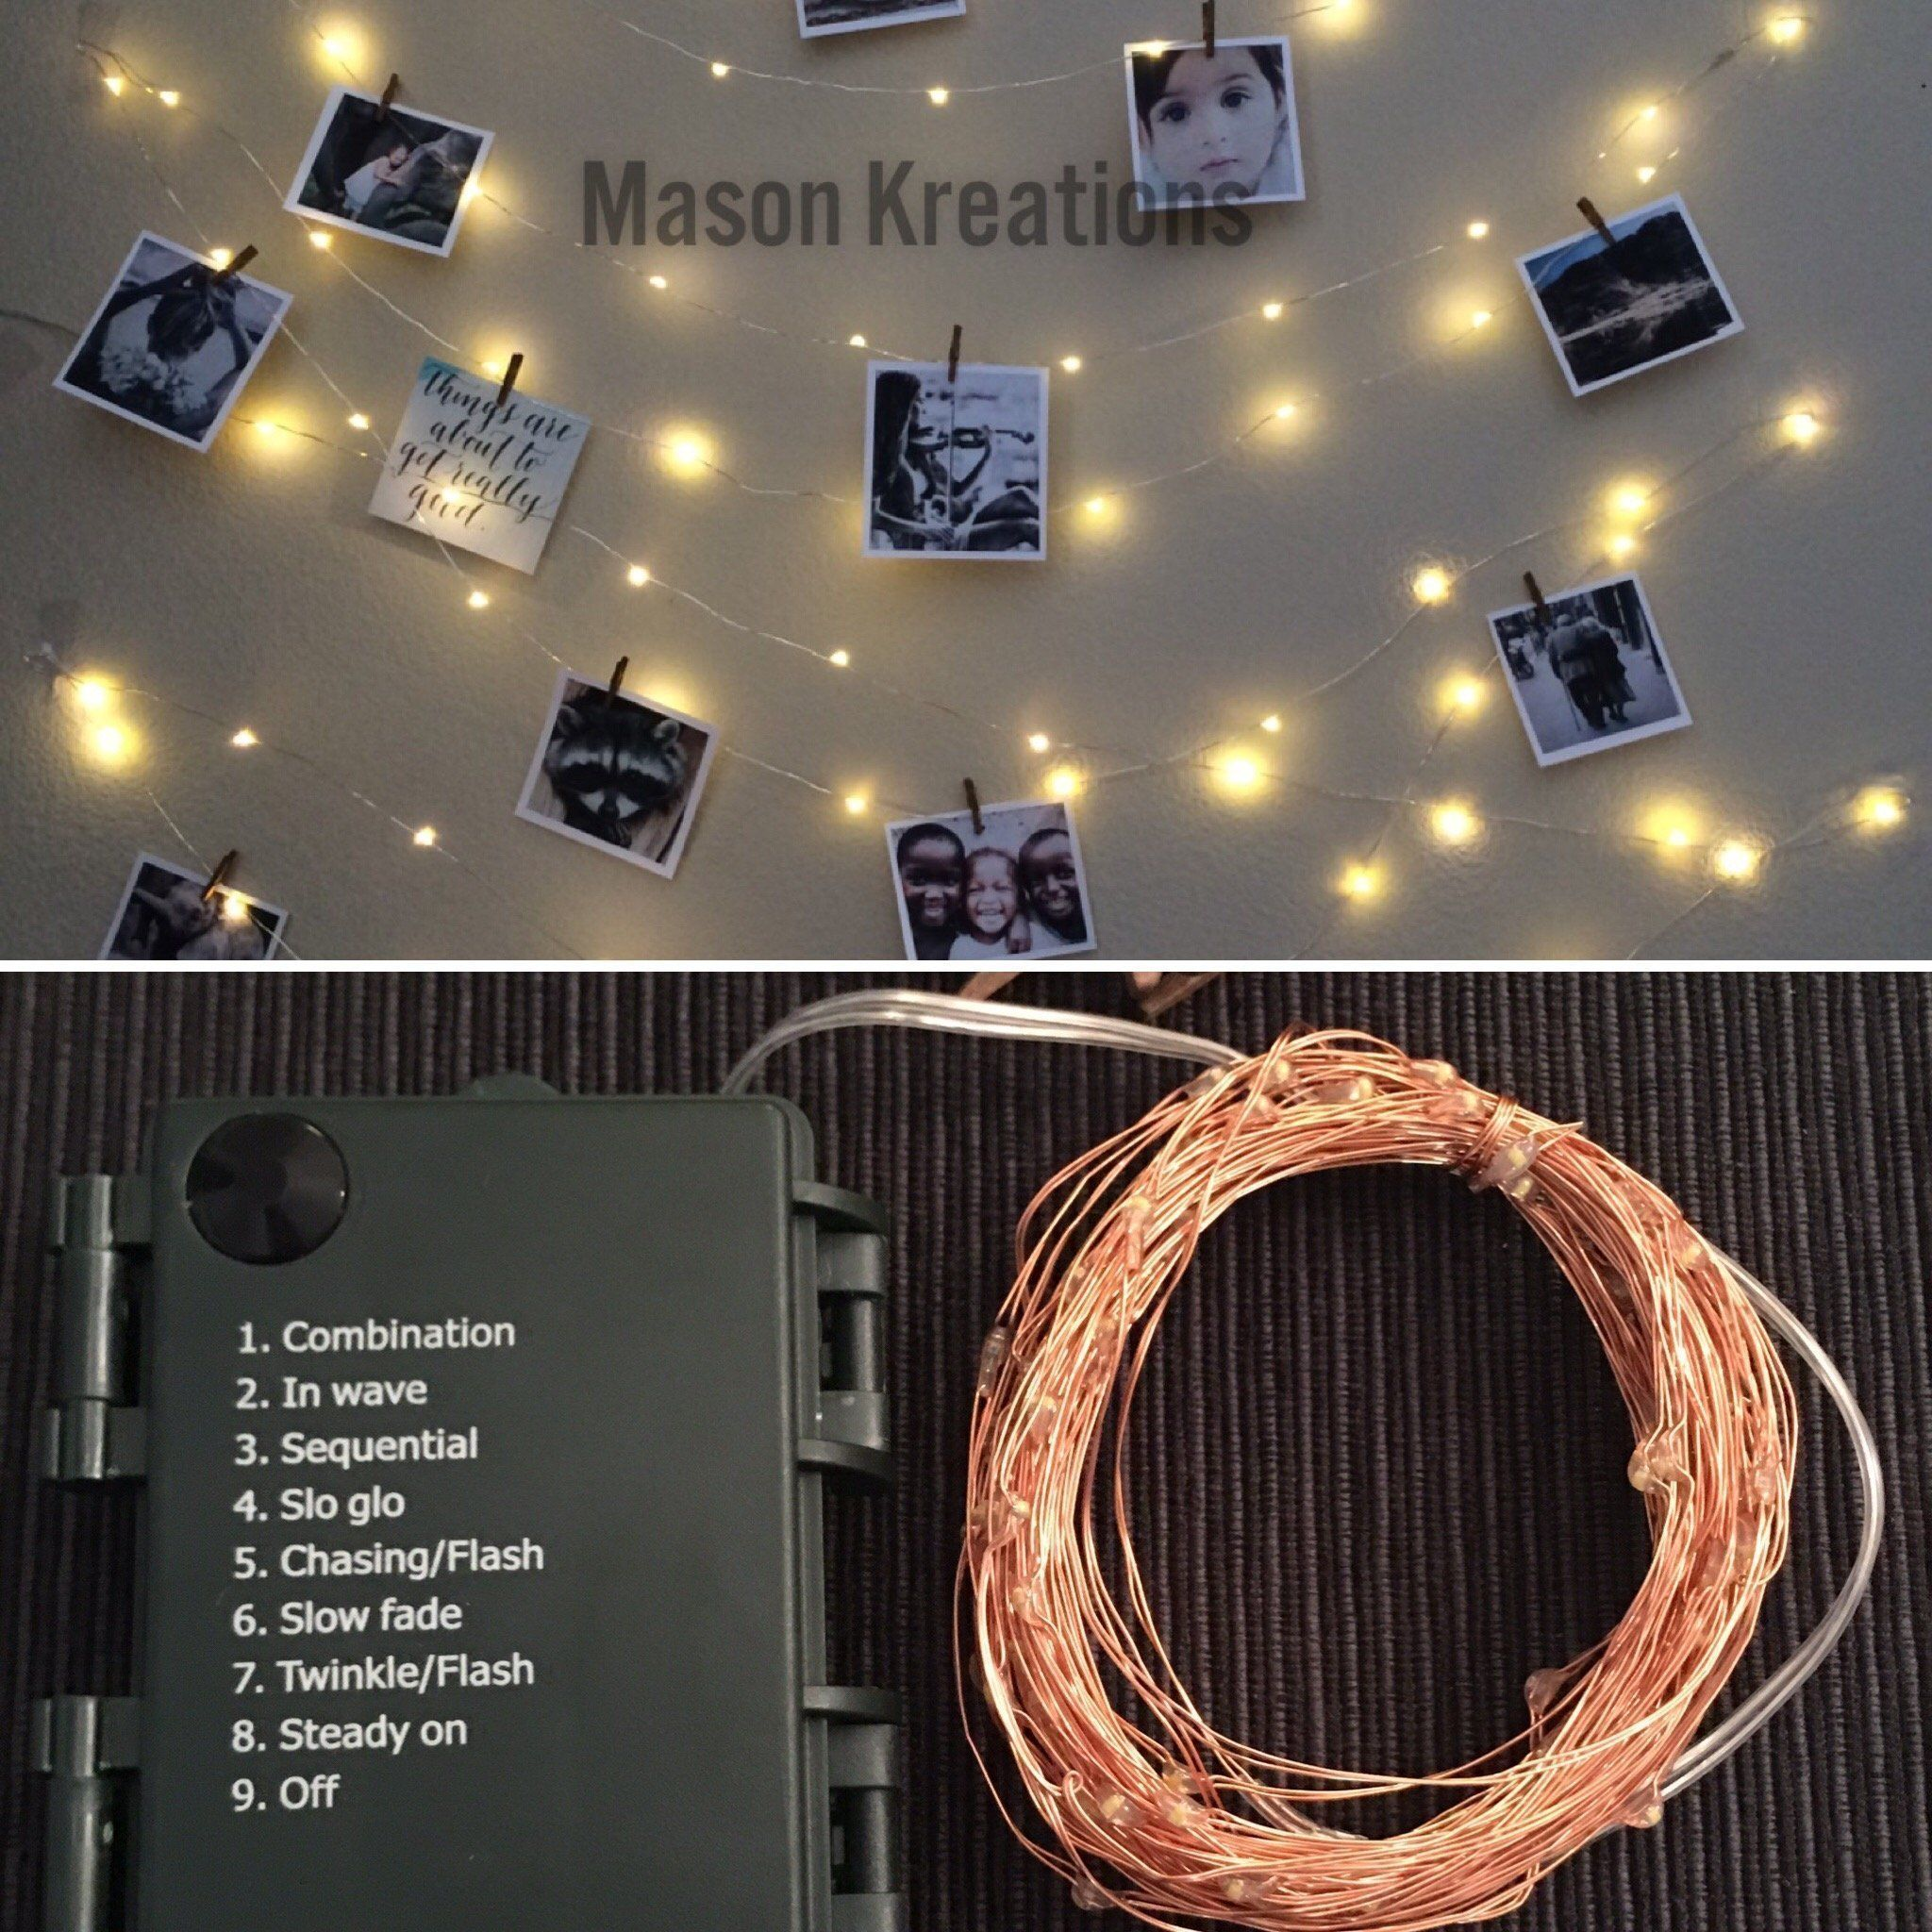 Mason Fairy Lights Rose Gold Wire Battery Operated 100 Led Warm White Decorative Mini Bulbs For Bedroom Rose Gold Fairy Lights Rose Lights Light Picture Wall